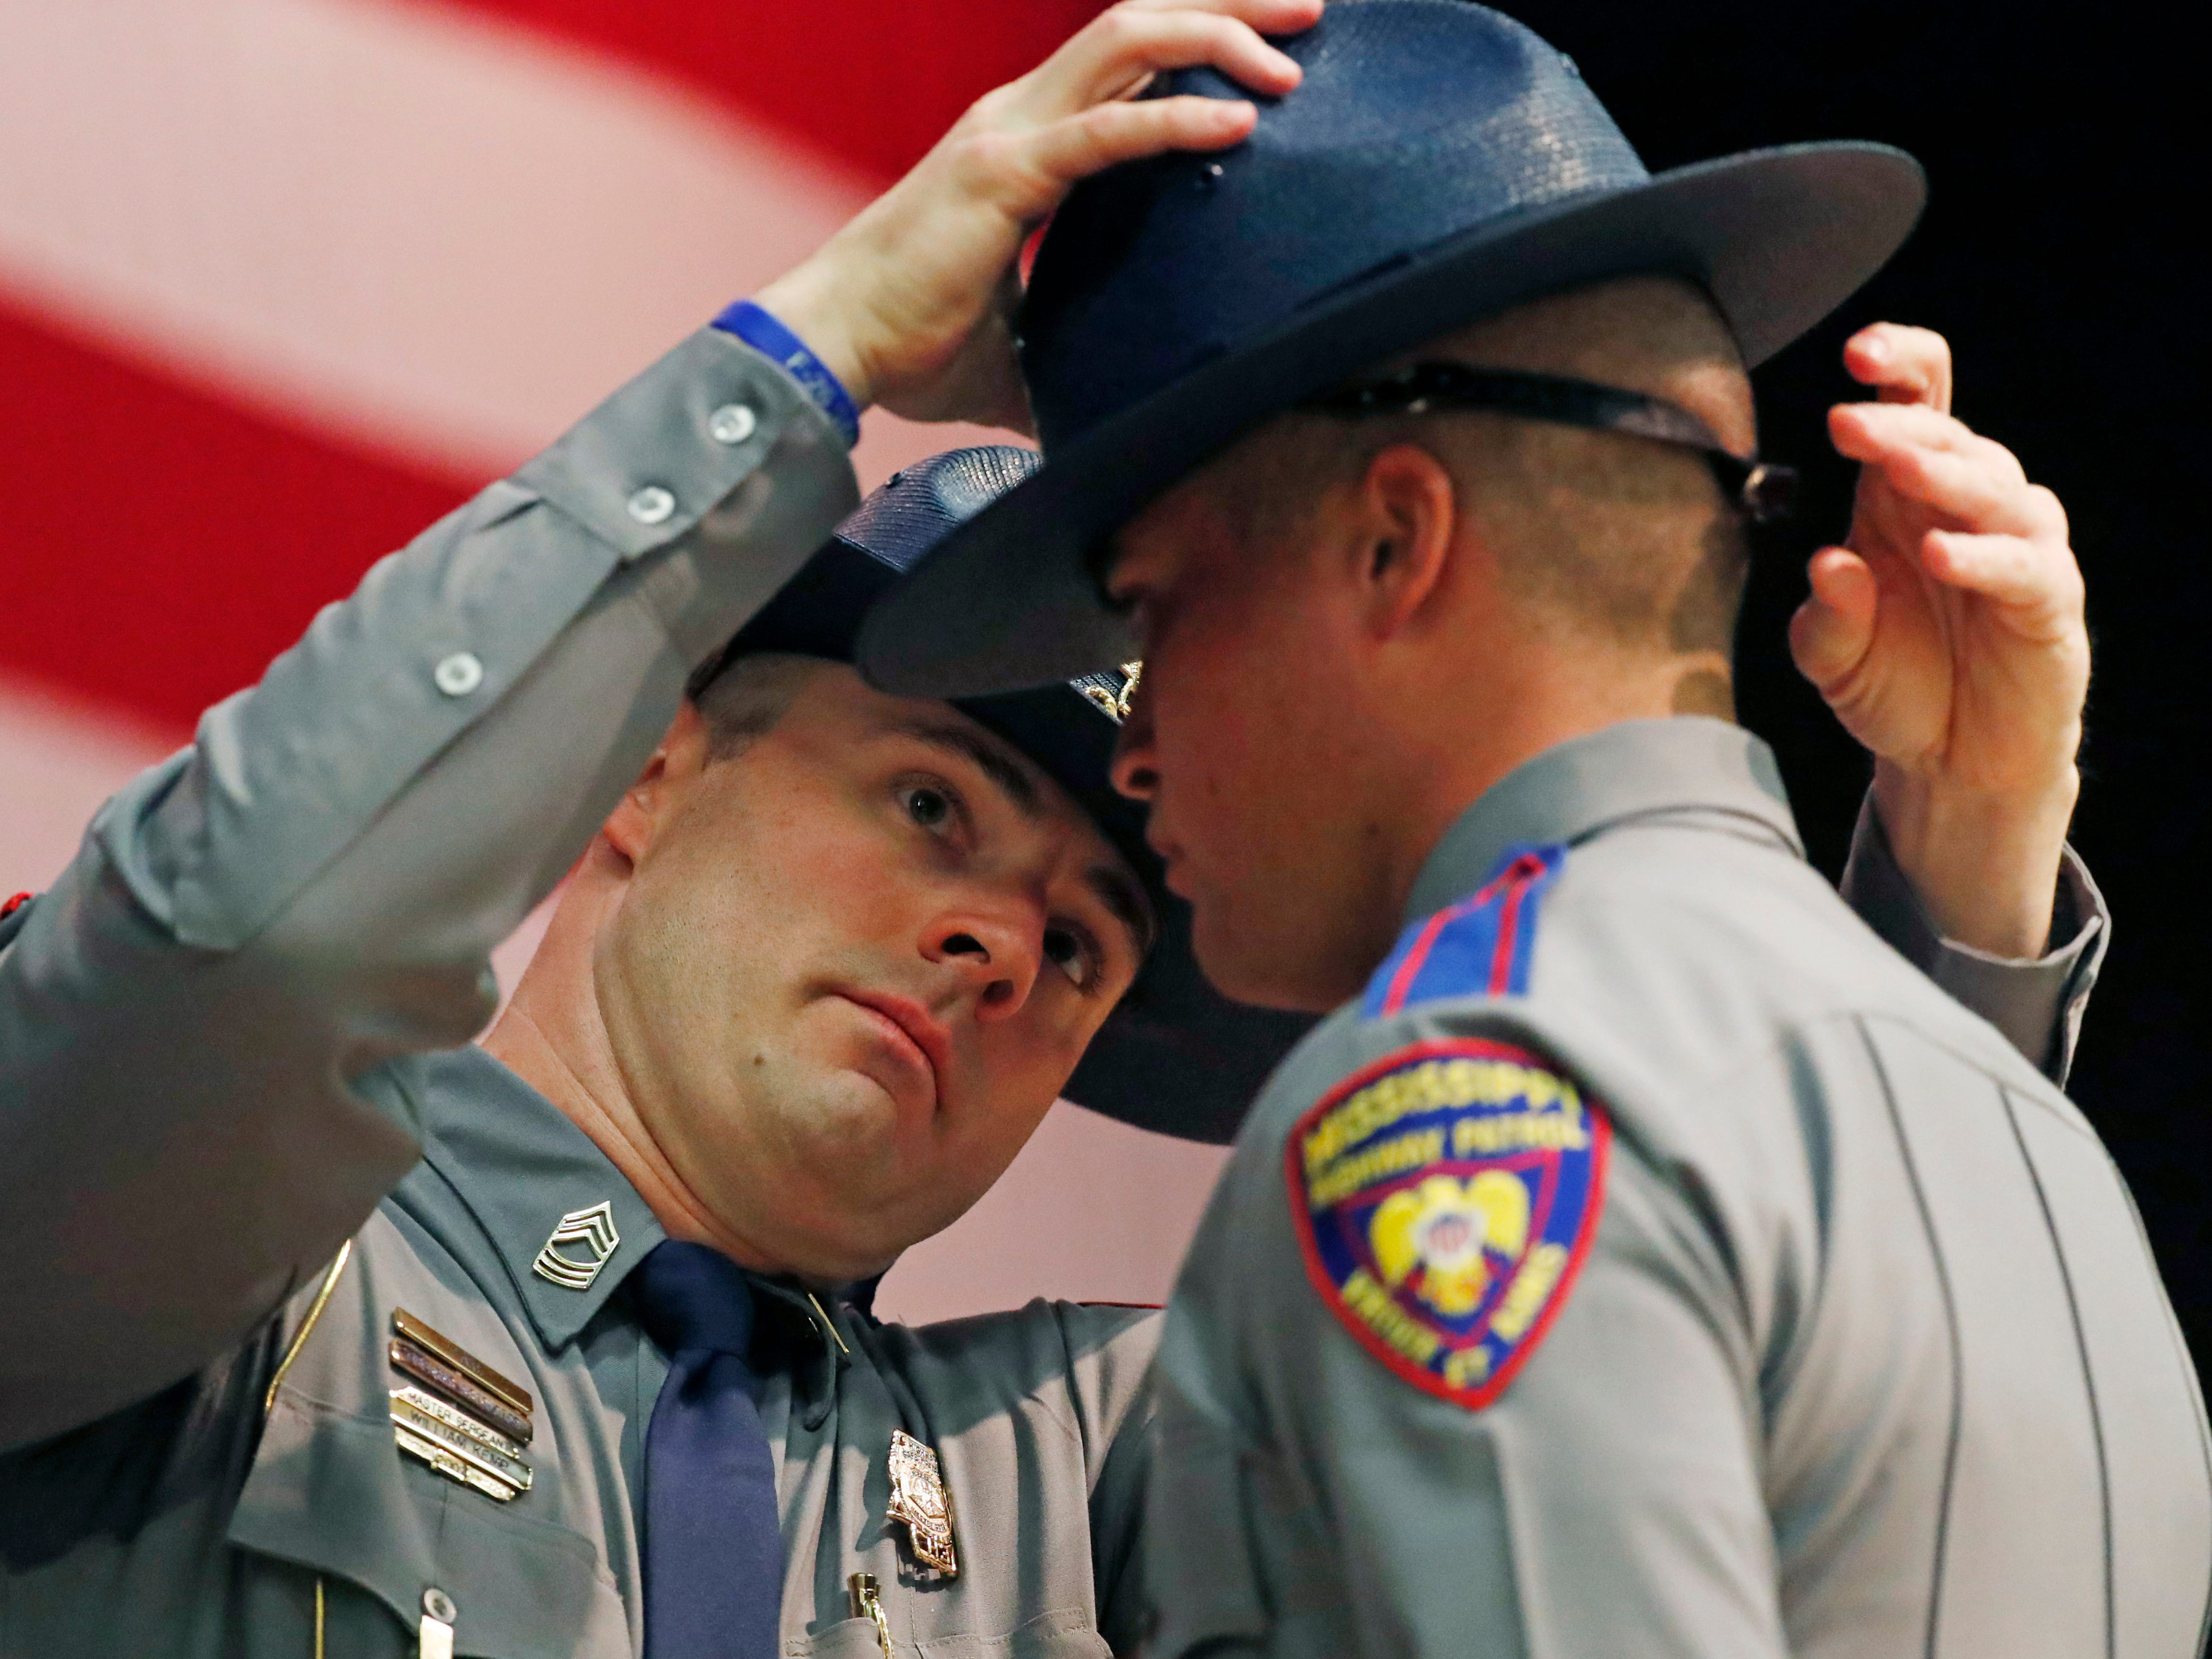 """Master Sgt. William Kemp, left, adjusts the """"cover"""" of one of the Mississippi Highway Safety Patrol Cadet Class 63 members, Wednesday, May 1, 2019, during their graduation ceremony at the Clyde Muse Center in Pearl, Miss. The patrol's training lasts 22 weeks and involves classroom instruction, physical fitness, firearms and emergency operations training as well as a variety of police science courses."""